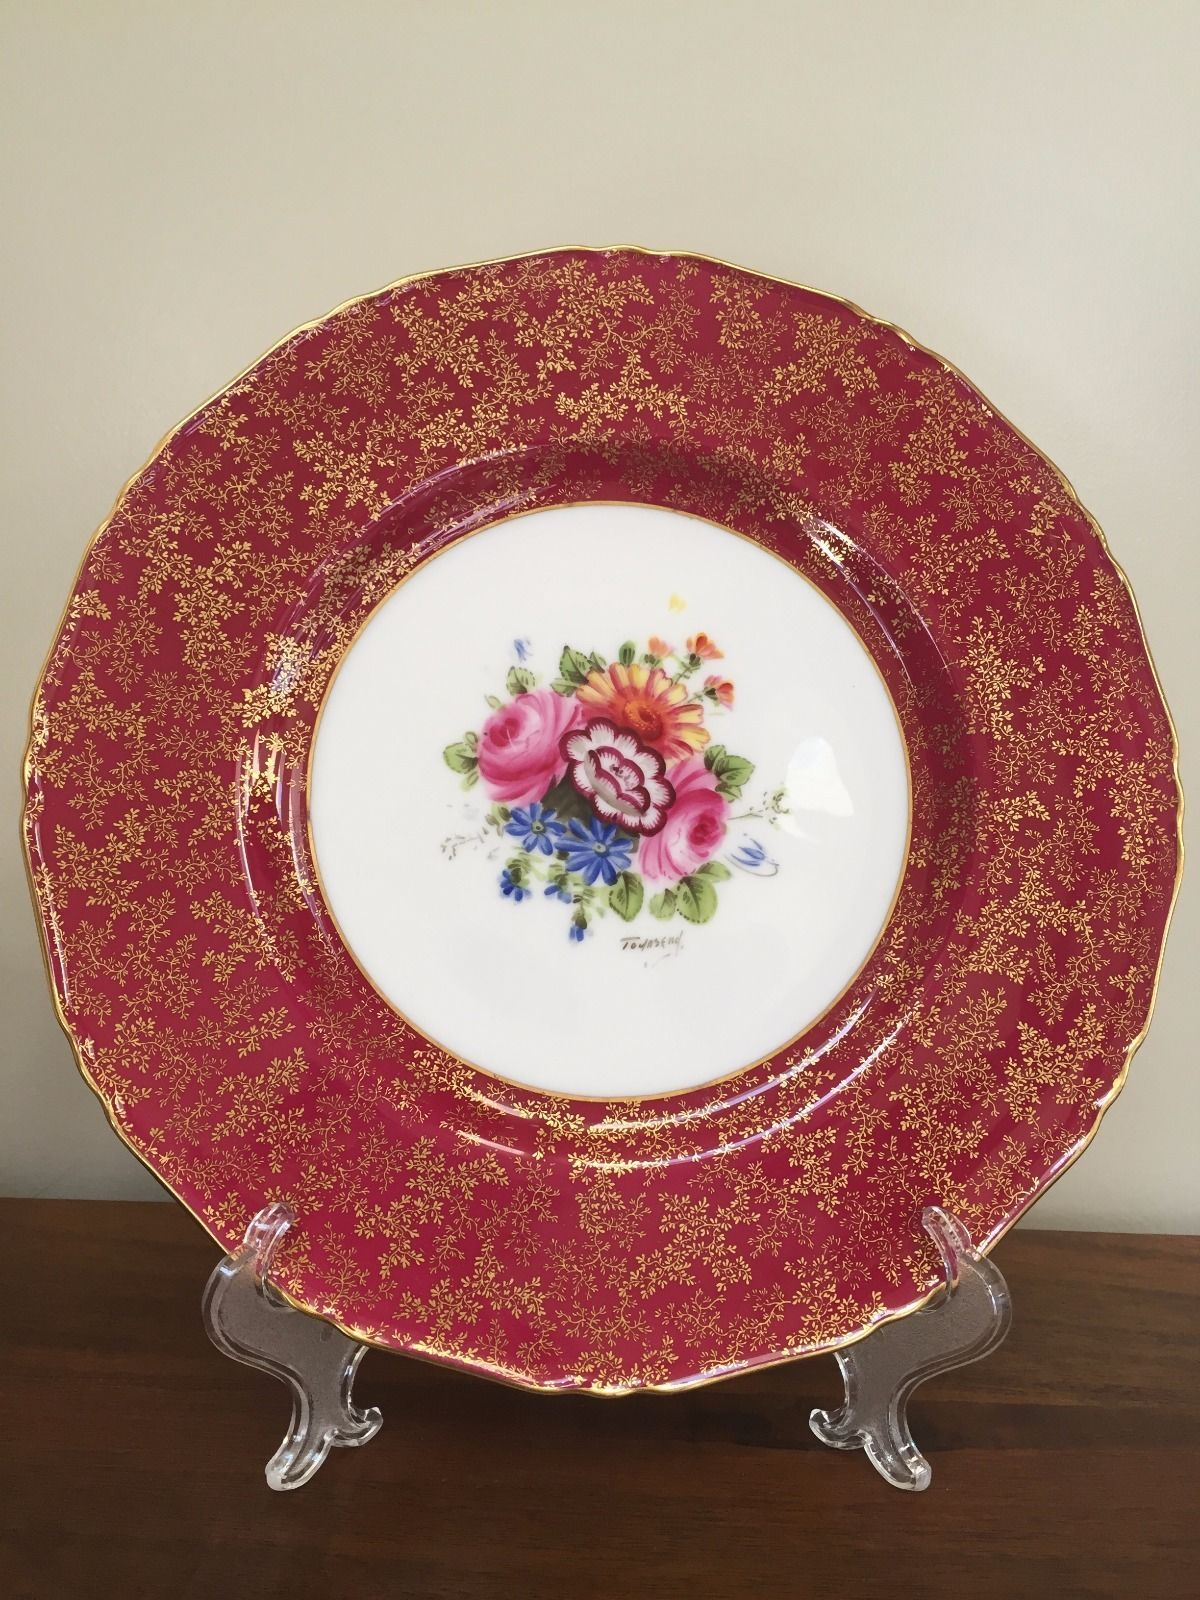 (12) Royal Worcester Hand Painted Dinner Plates Ruby \u0026 Gold Signed Townsend & 12) Royal Worcester Hand Painted Dinner Plates Ruby \u0026 Gold Signed ...